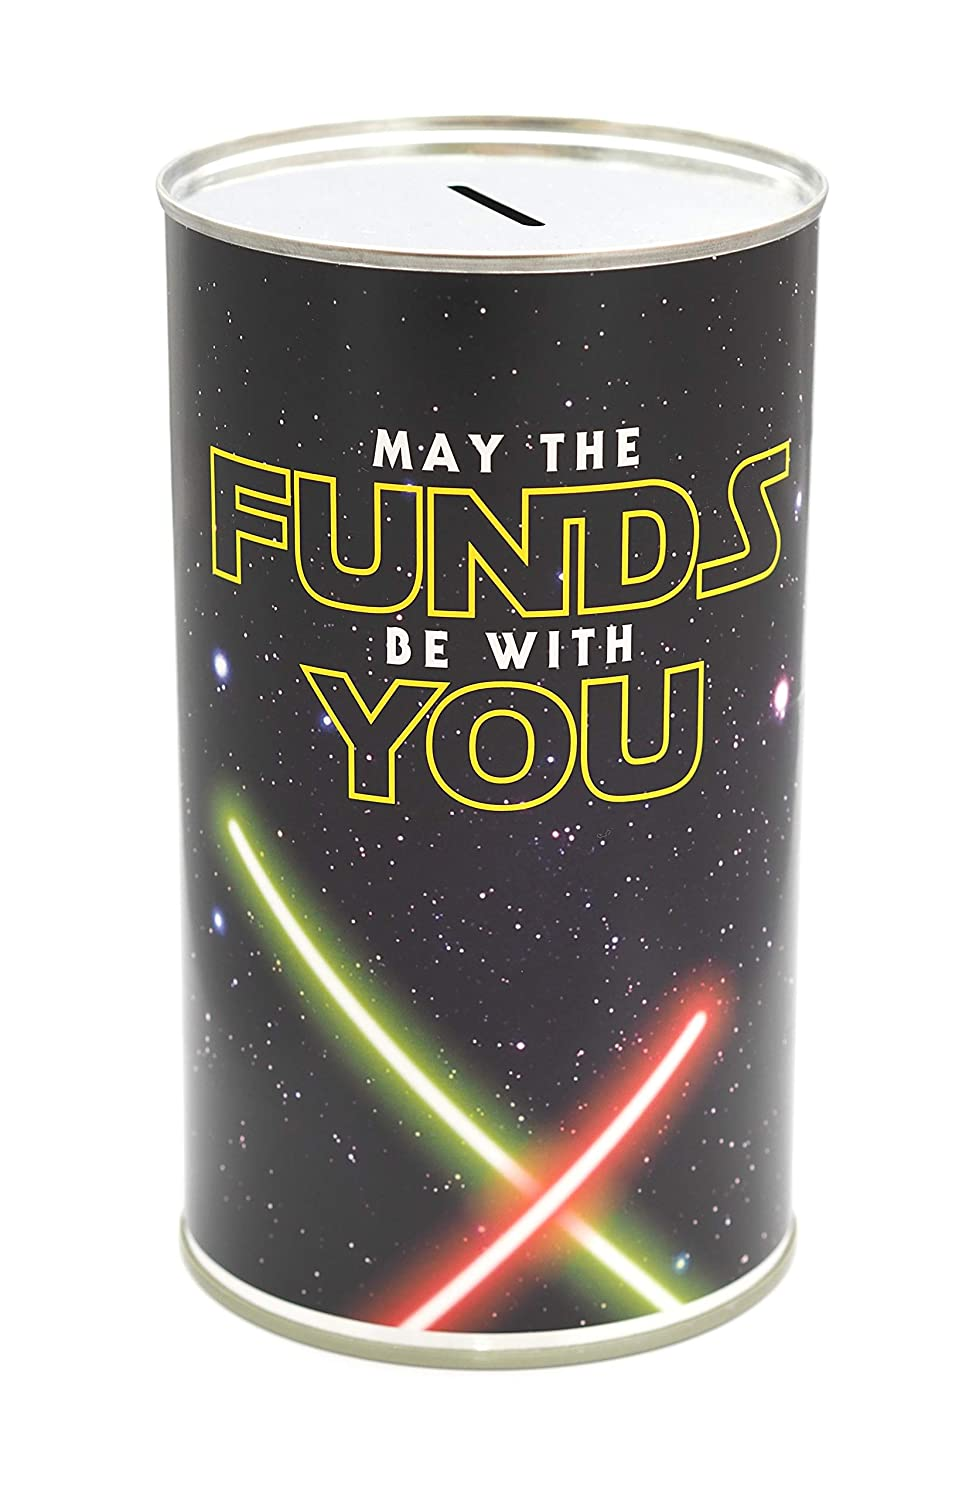 CanTastic May the Funds be with You - LARGE Savings Tin - Star Money Box Wars Wow Retail Ltd